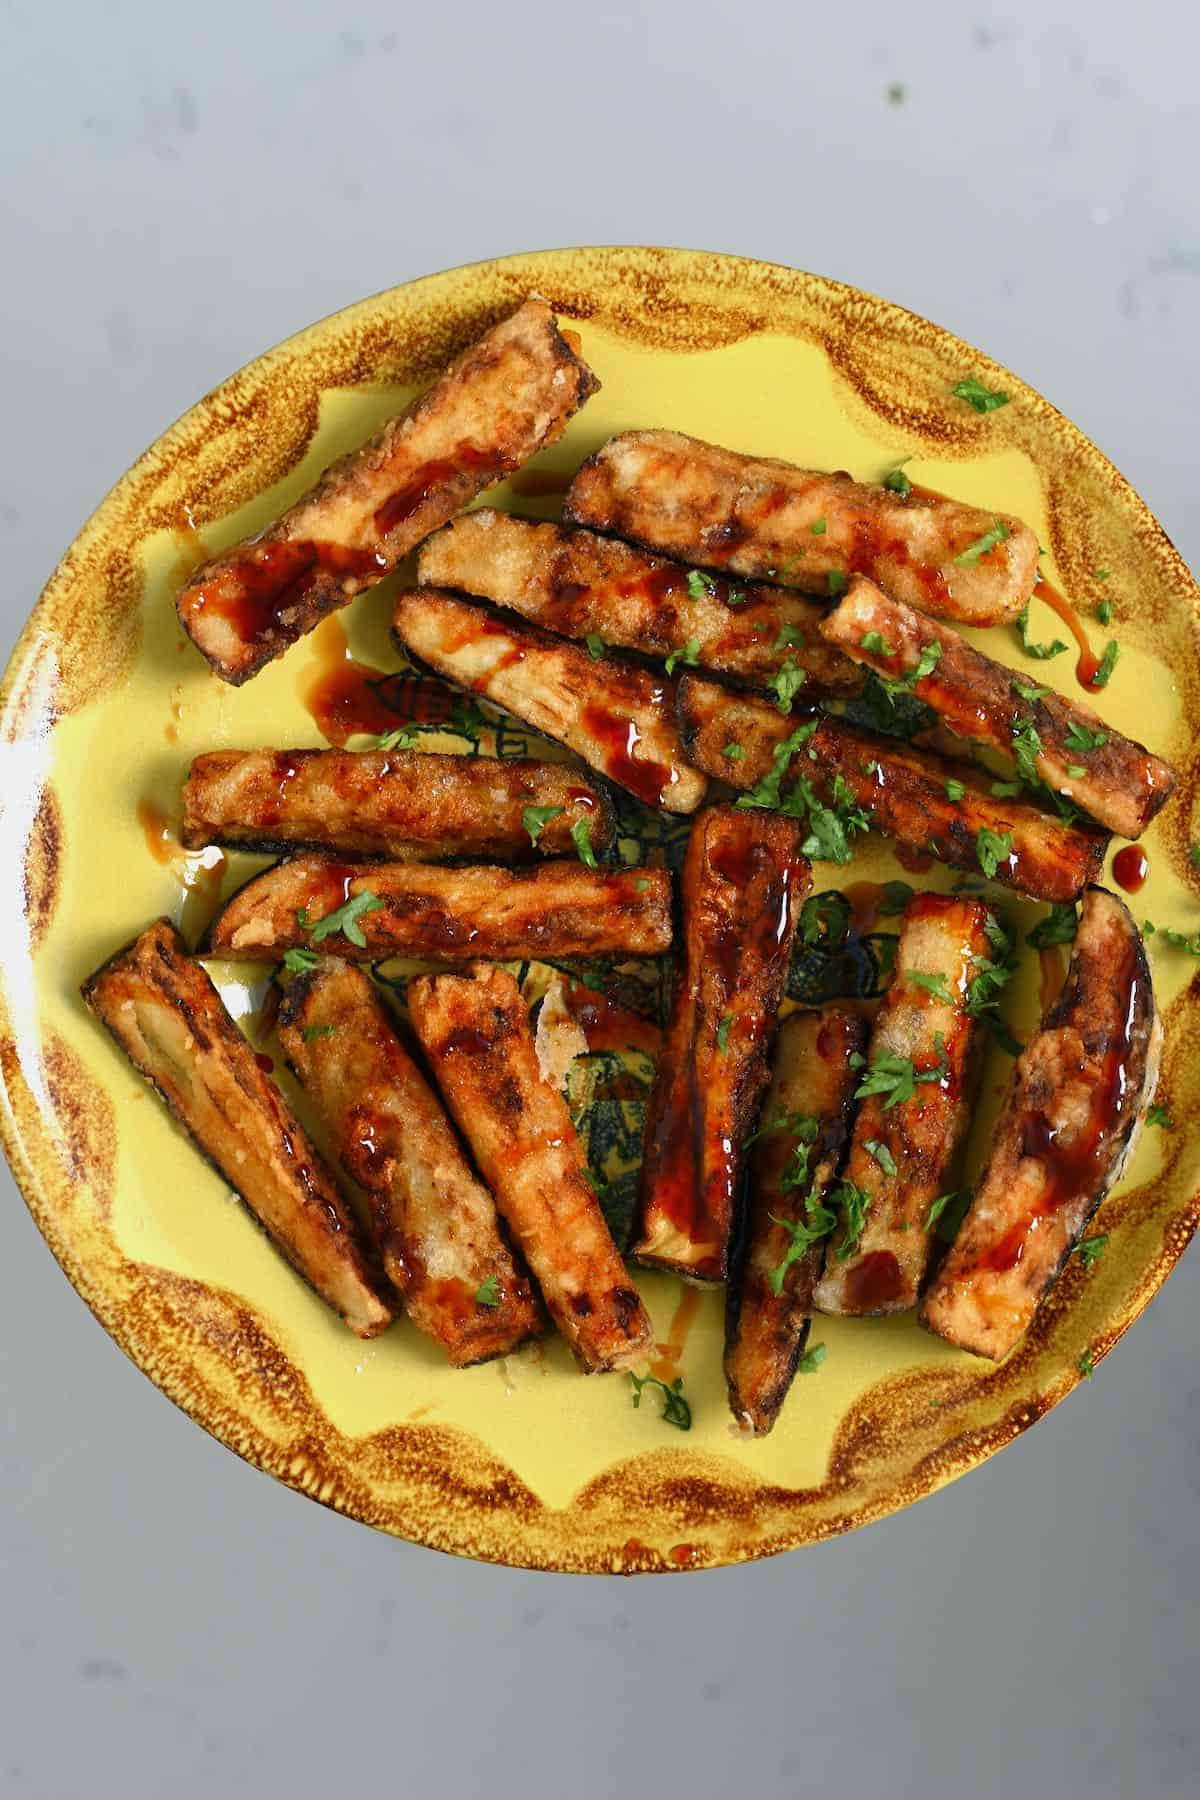 A plate with eggplant fries